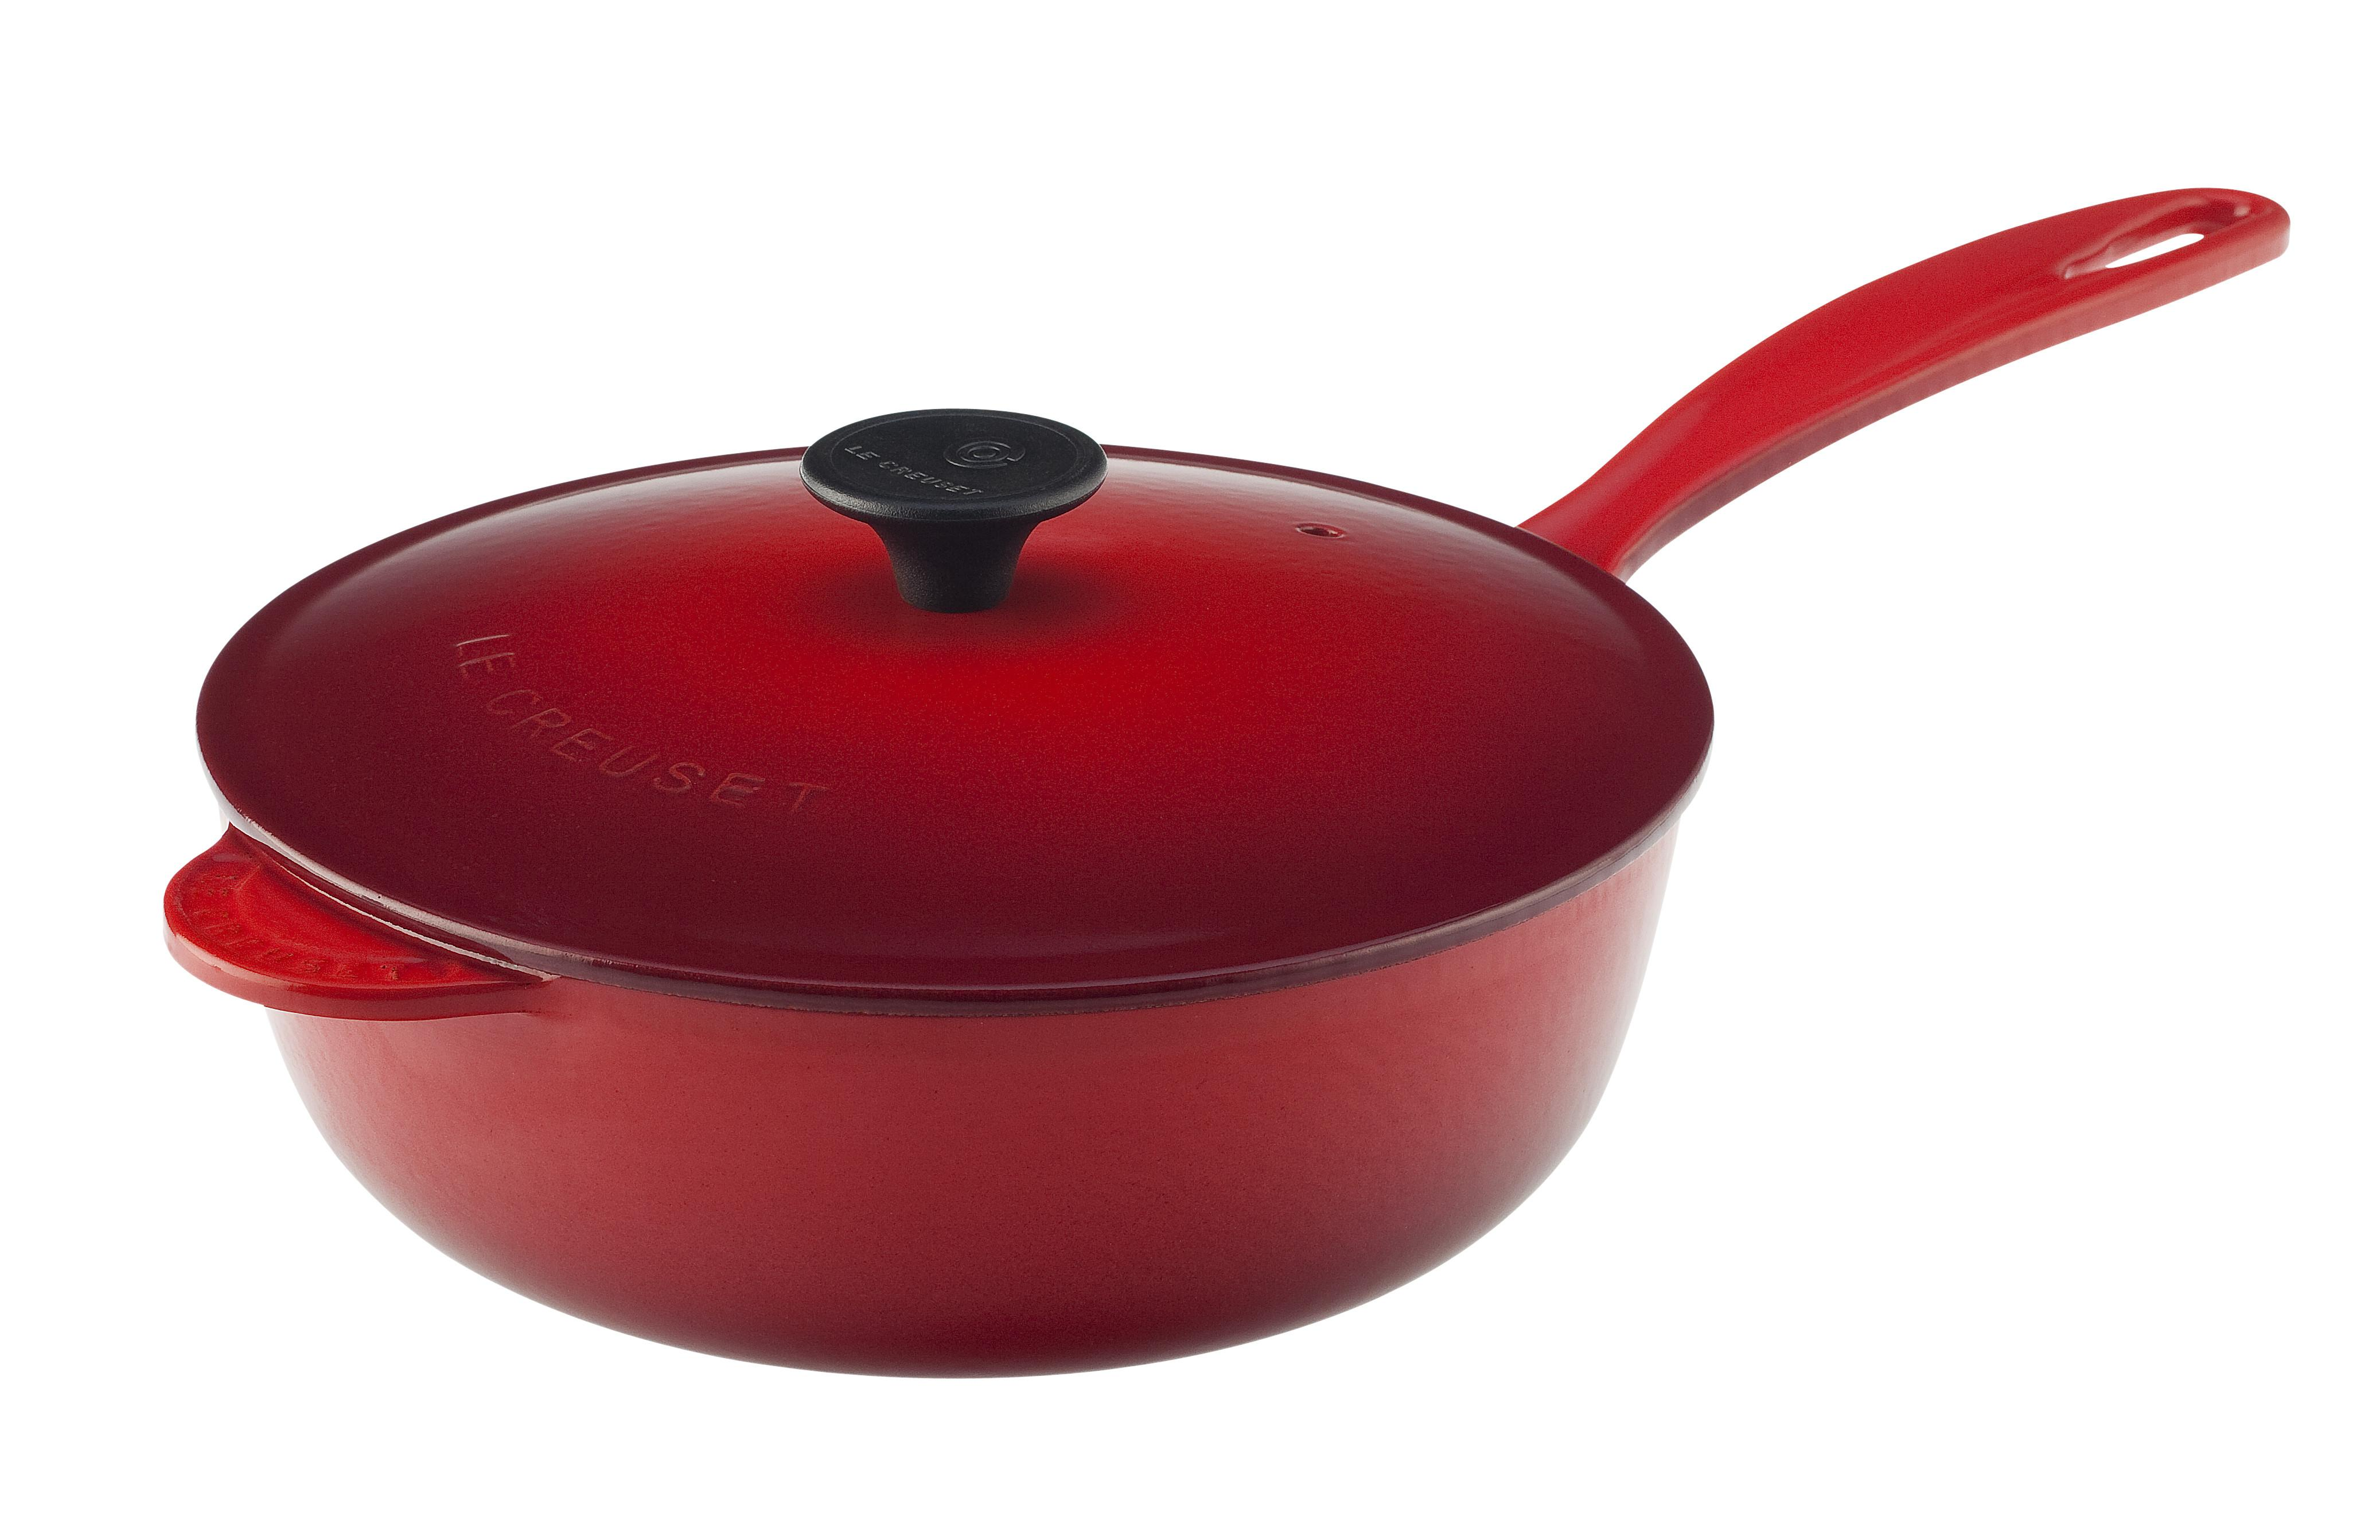 le creuset enameled cast iron 2 1 4 quart saucier pan cerise cherry red kitchen. Black Bedroom Furniture Sets. Home Design Ideas